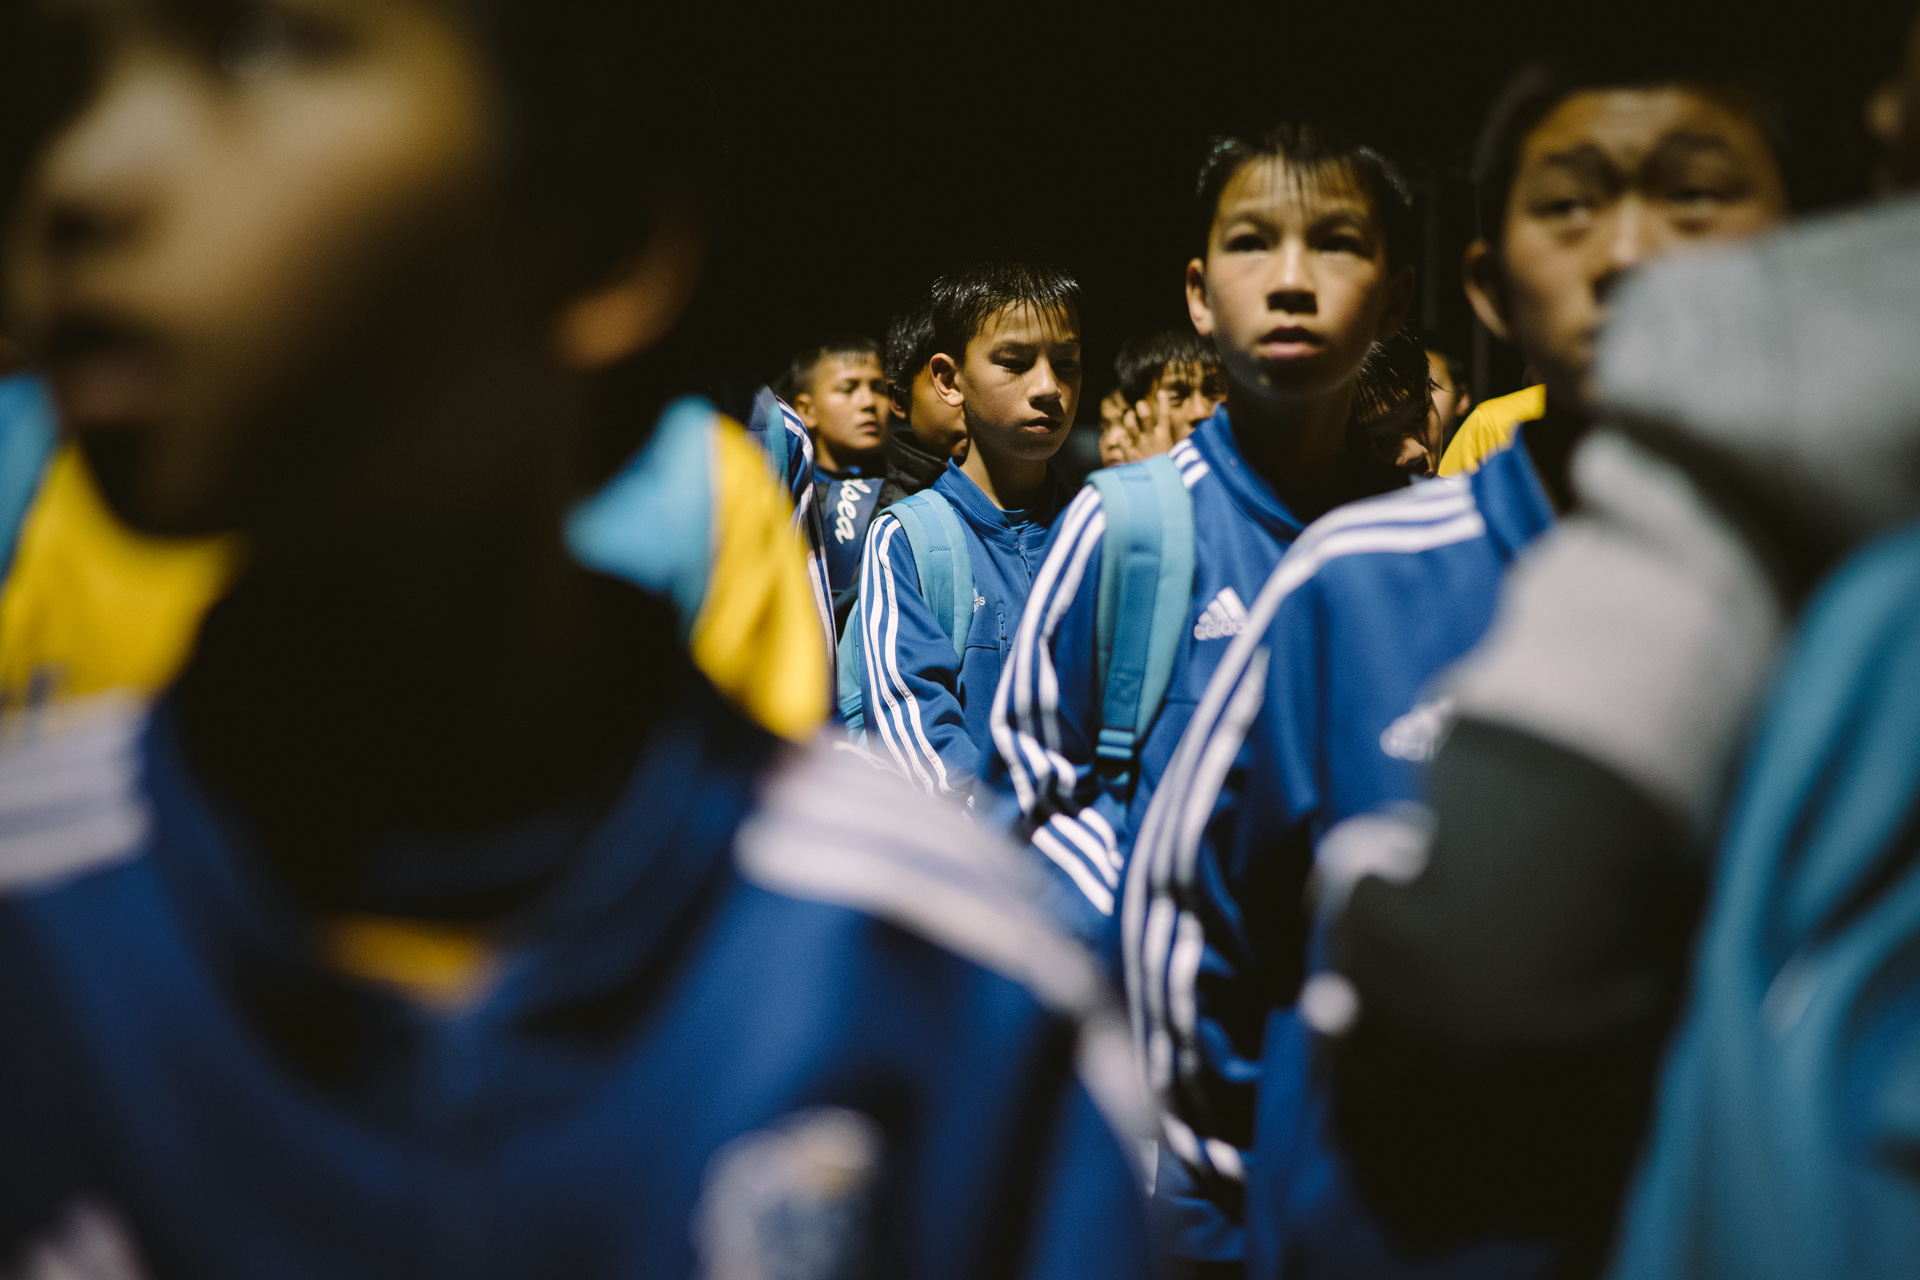 Twins Husan and Hasan, 11, are listening to a coach's speech after night training. March 17, 2016.